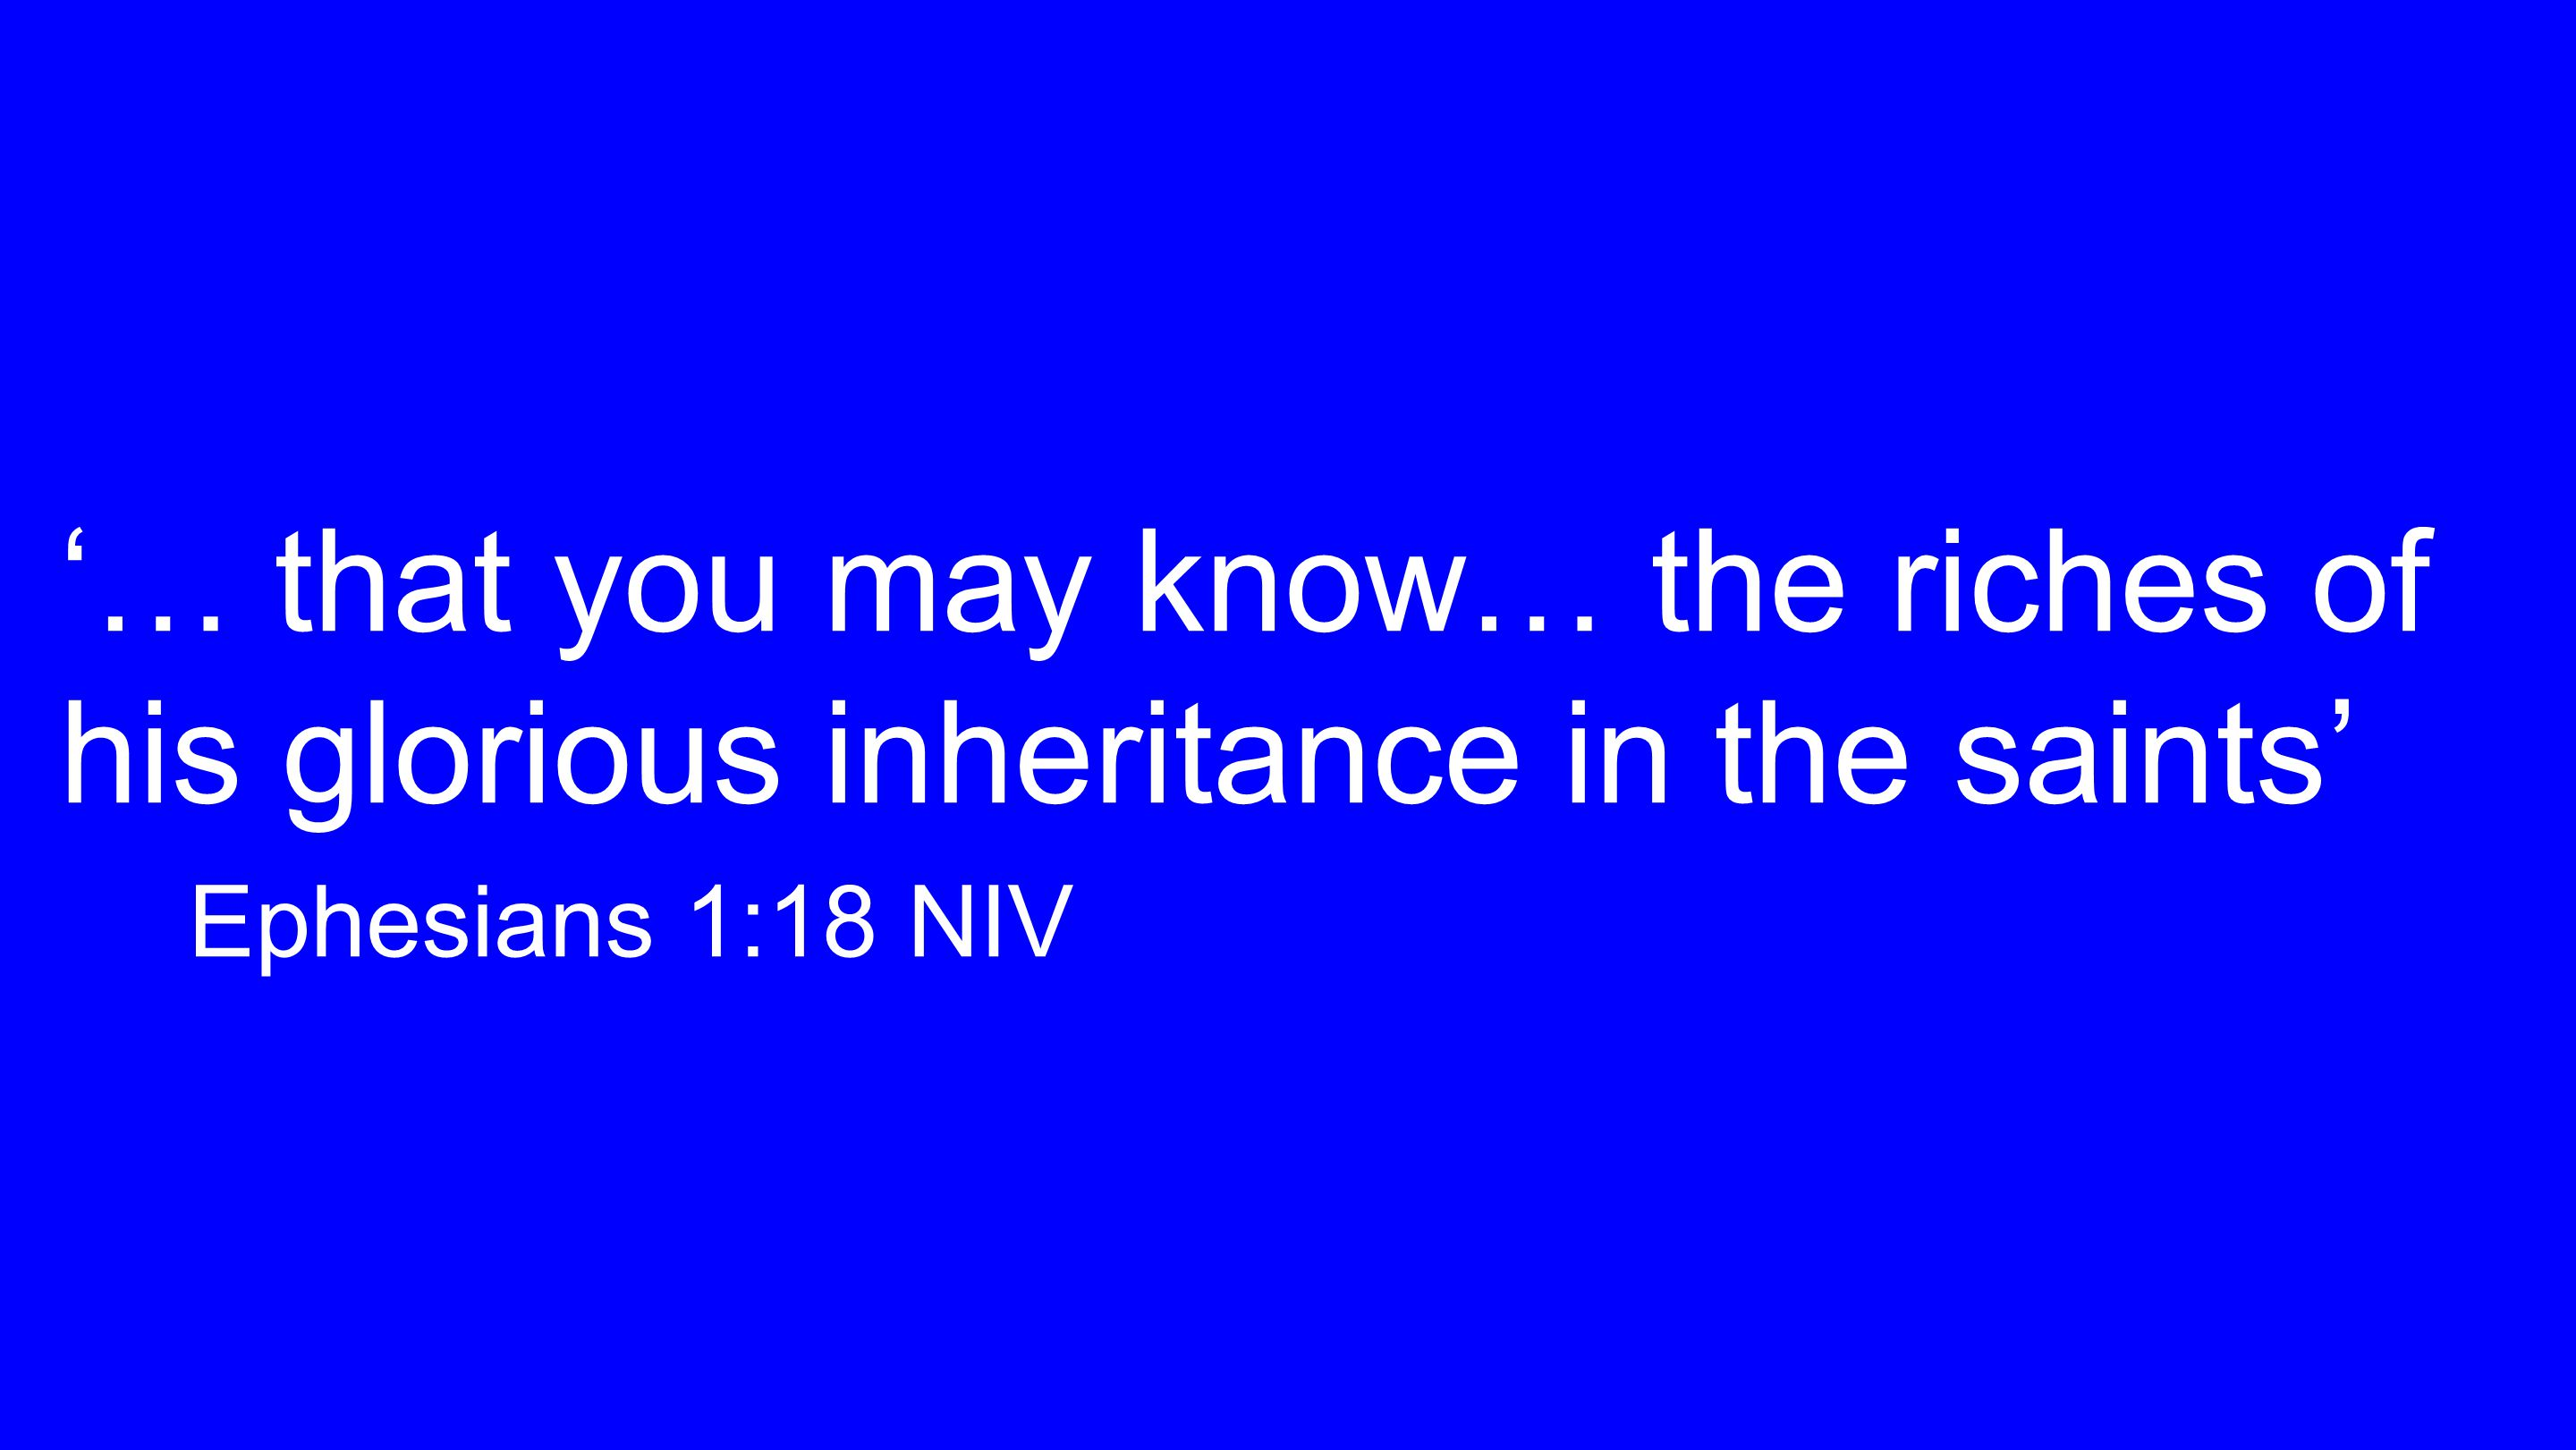 '… that you may know… the riches of his glorious inheritance in the saints' Ephesians 1:18 NIV